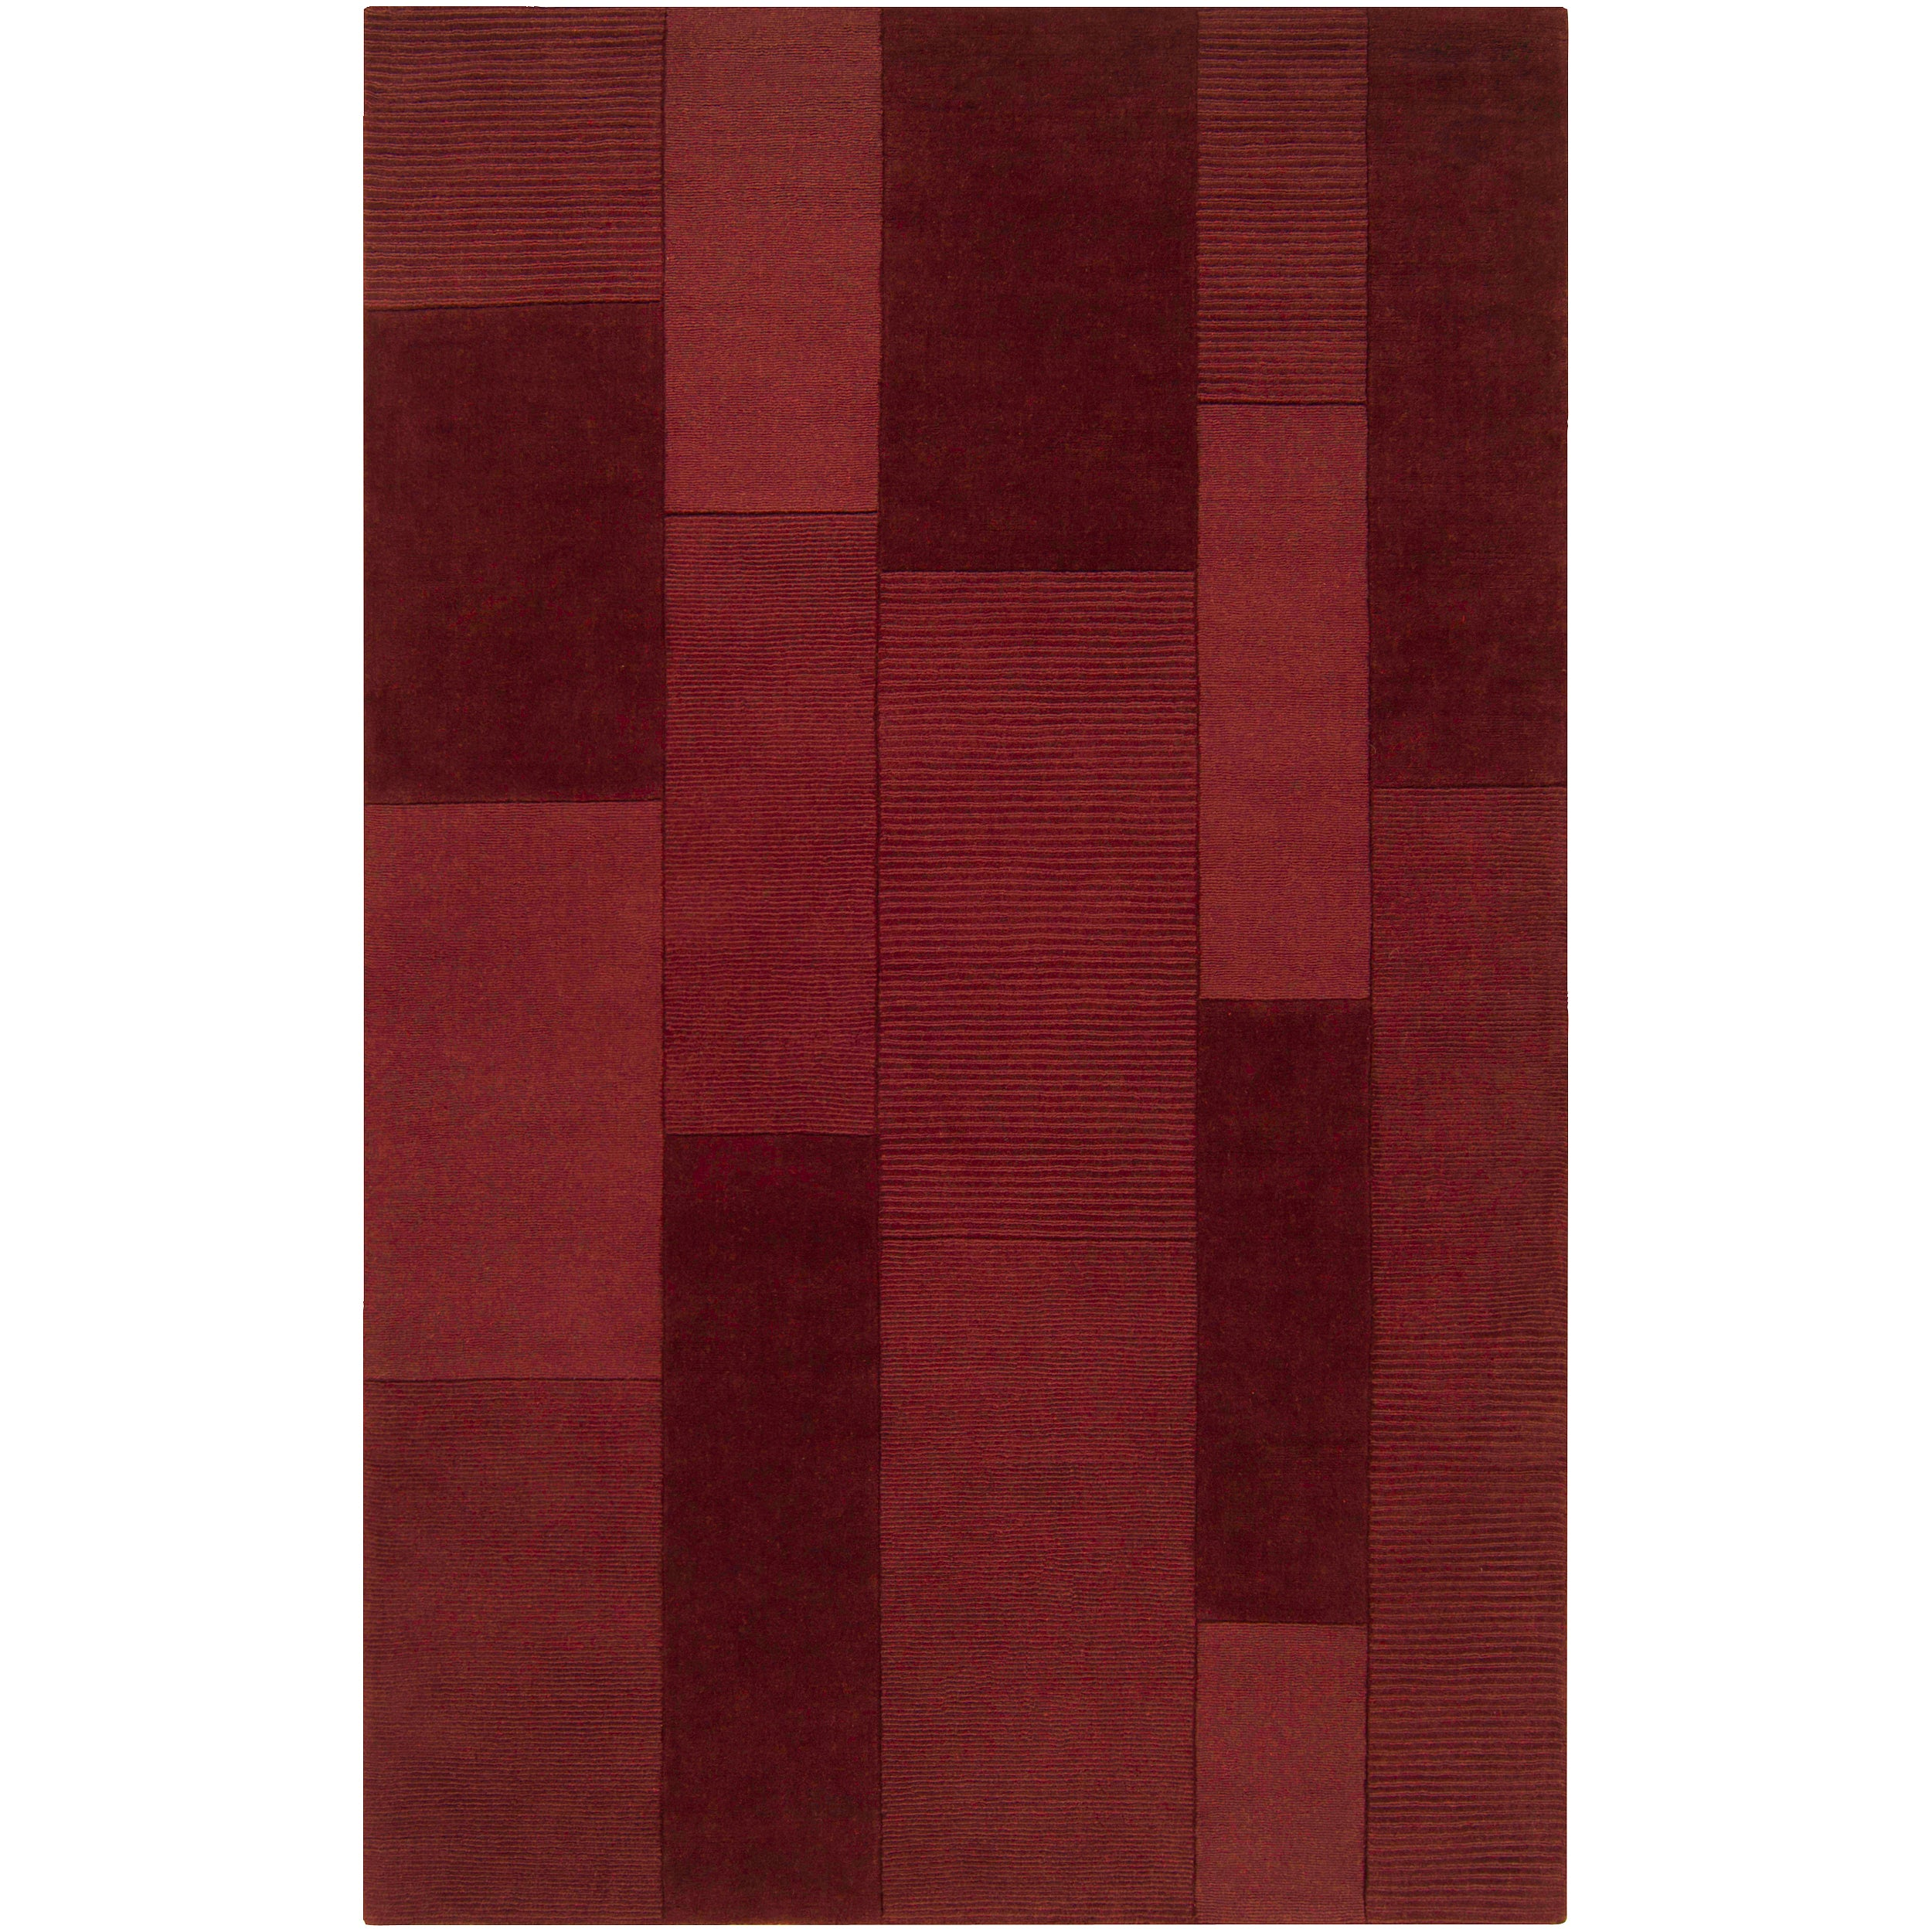 Hand-crafted Solid Casual Red Carlea Wool Rug (8' x 10')